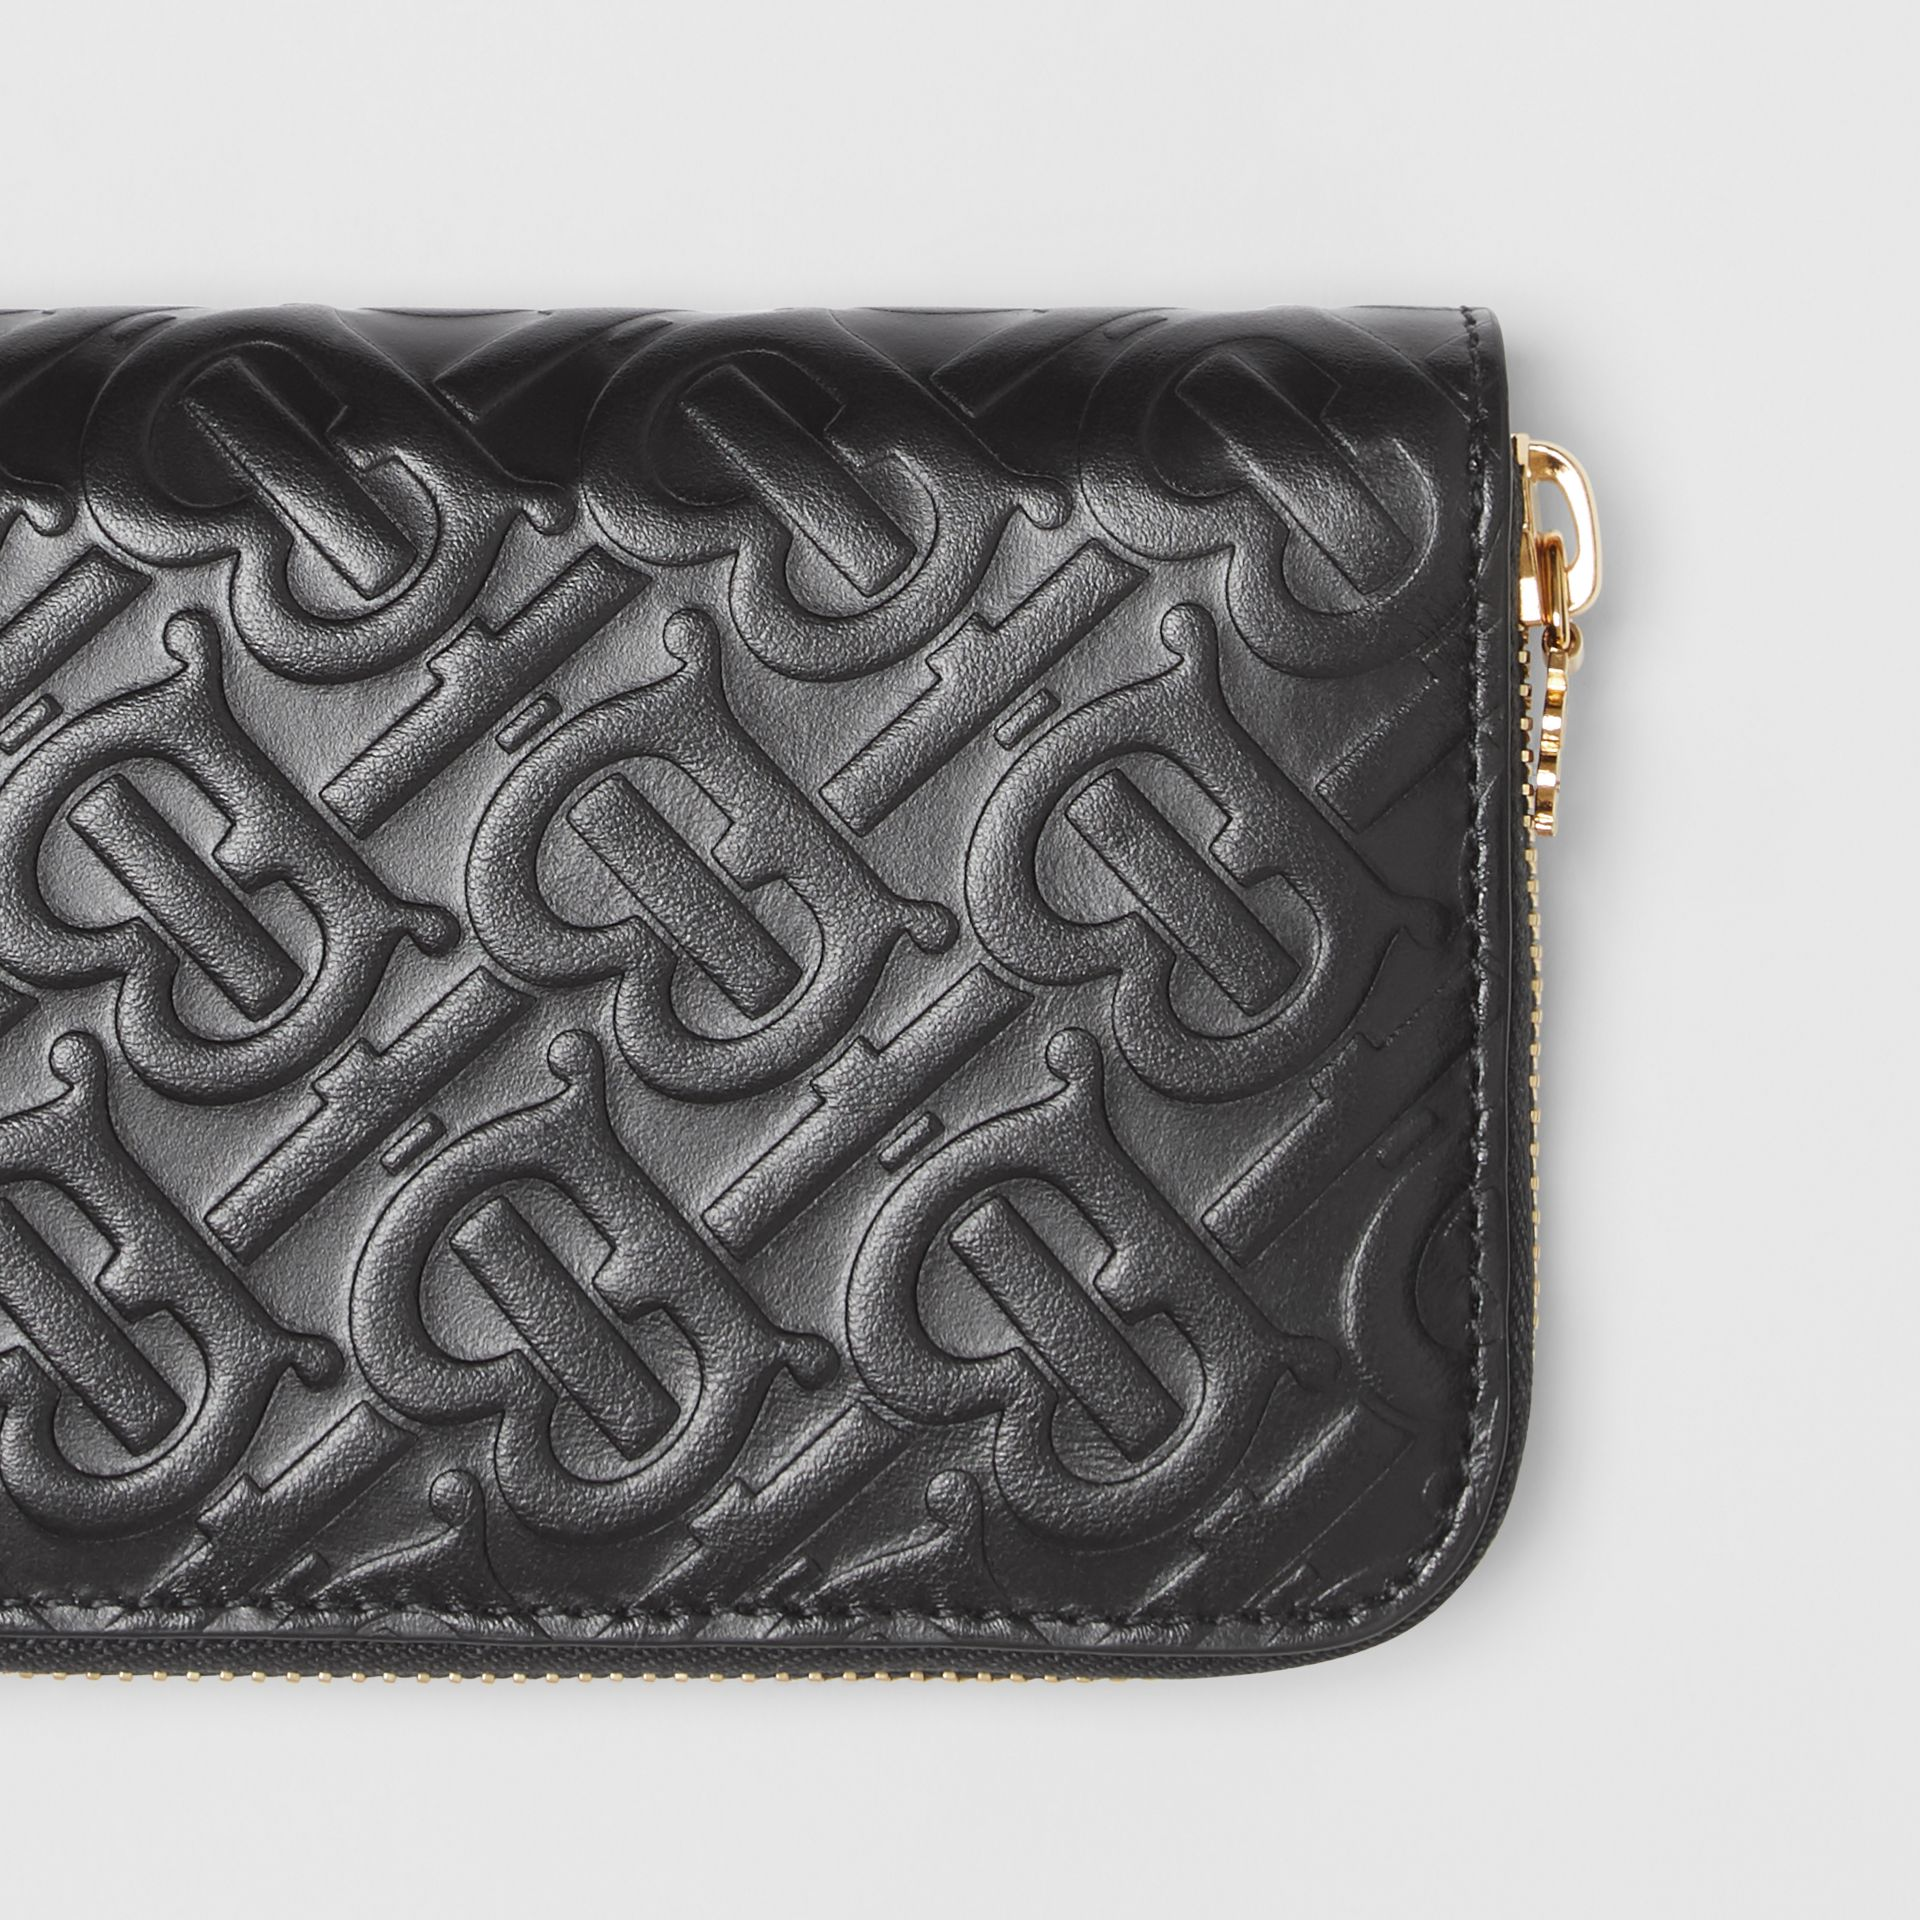 Monogram Leather Ziparound Wallet in Black - Women | Burberry United States - gallery image 1